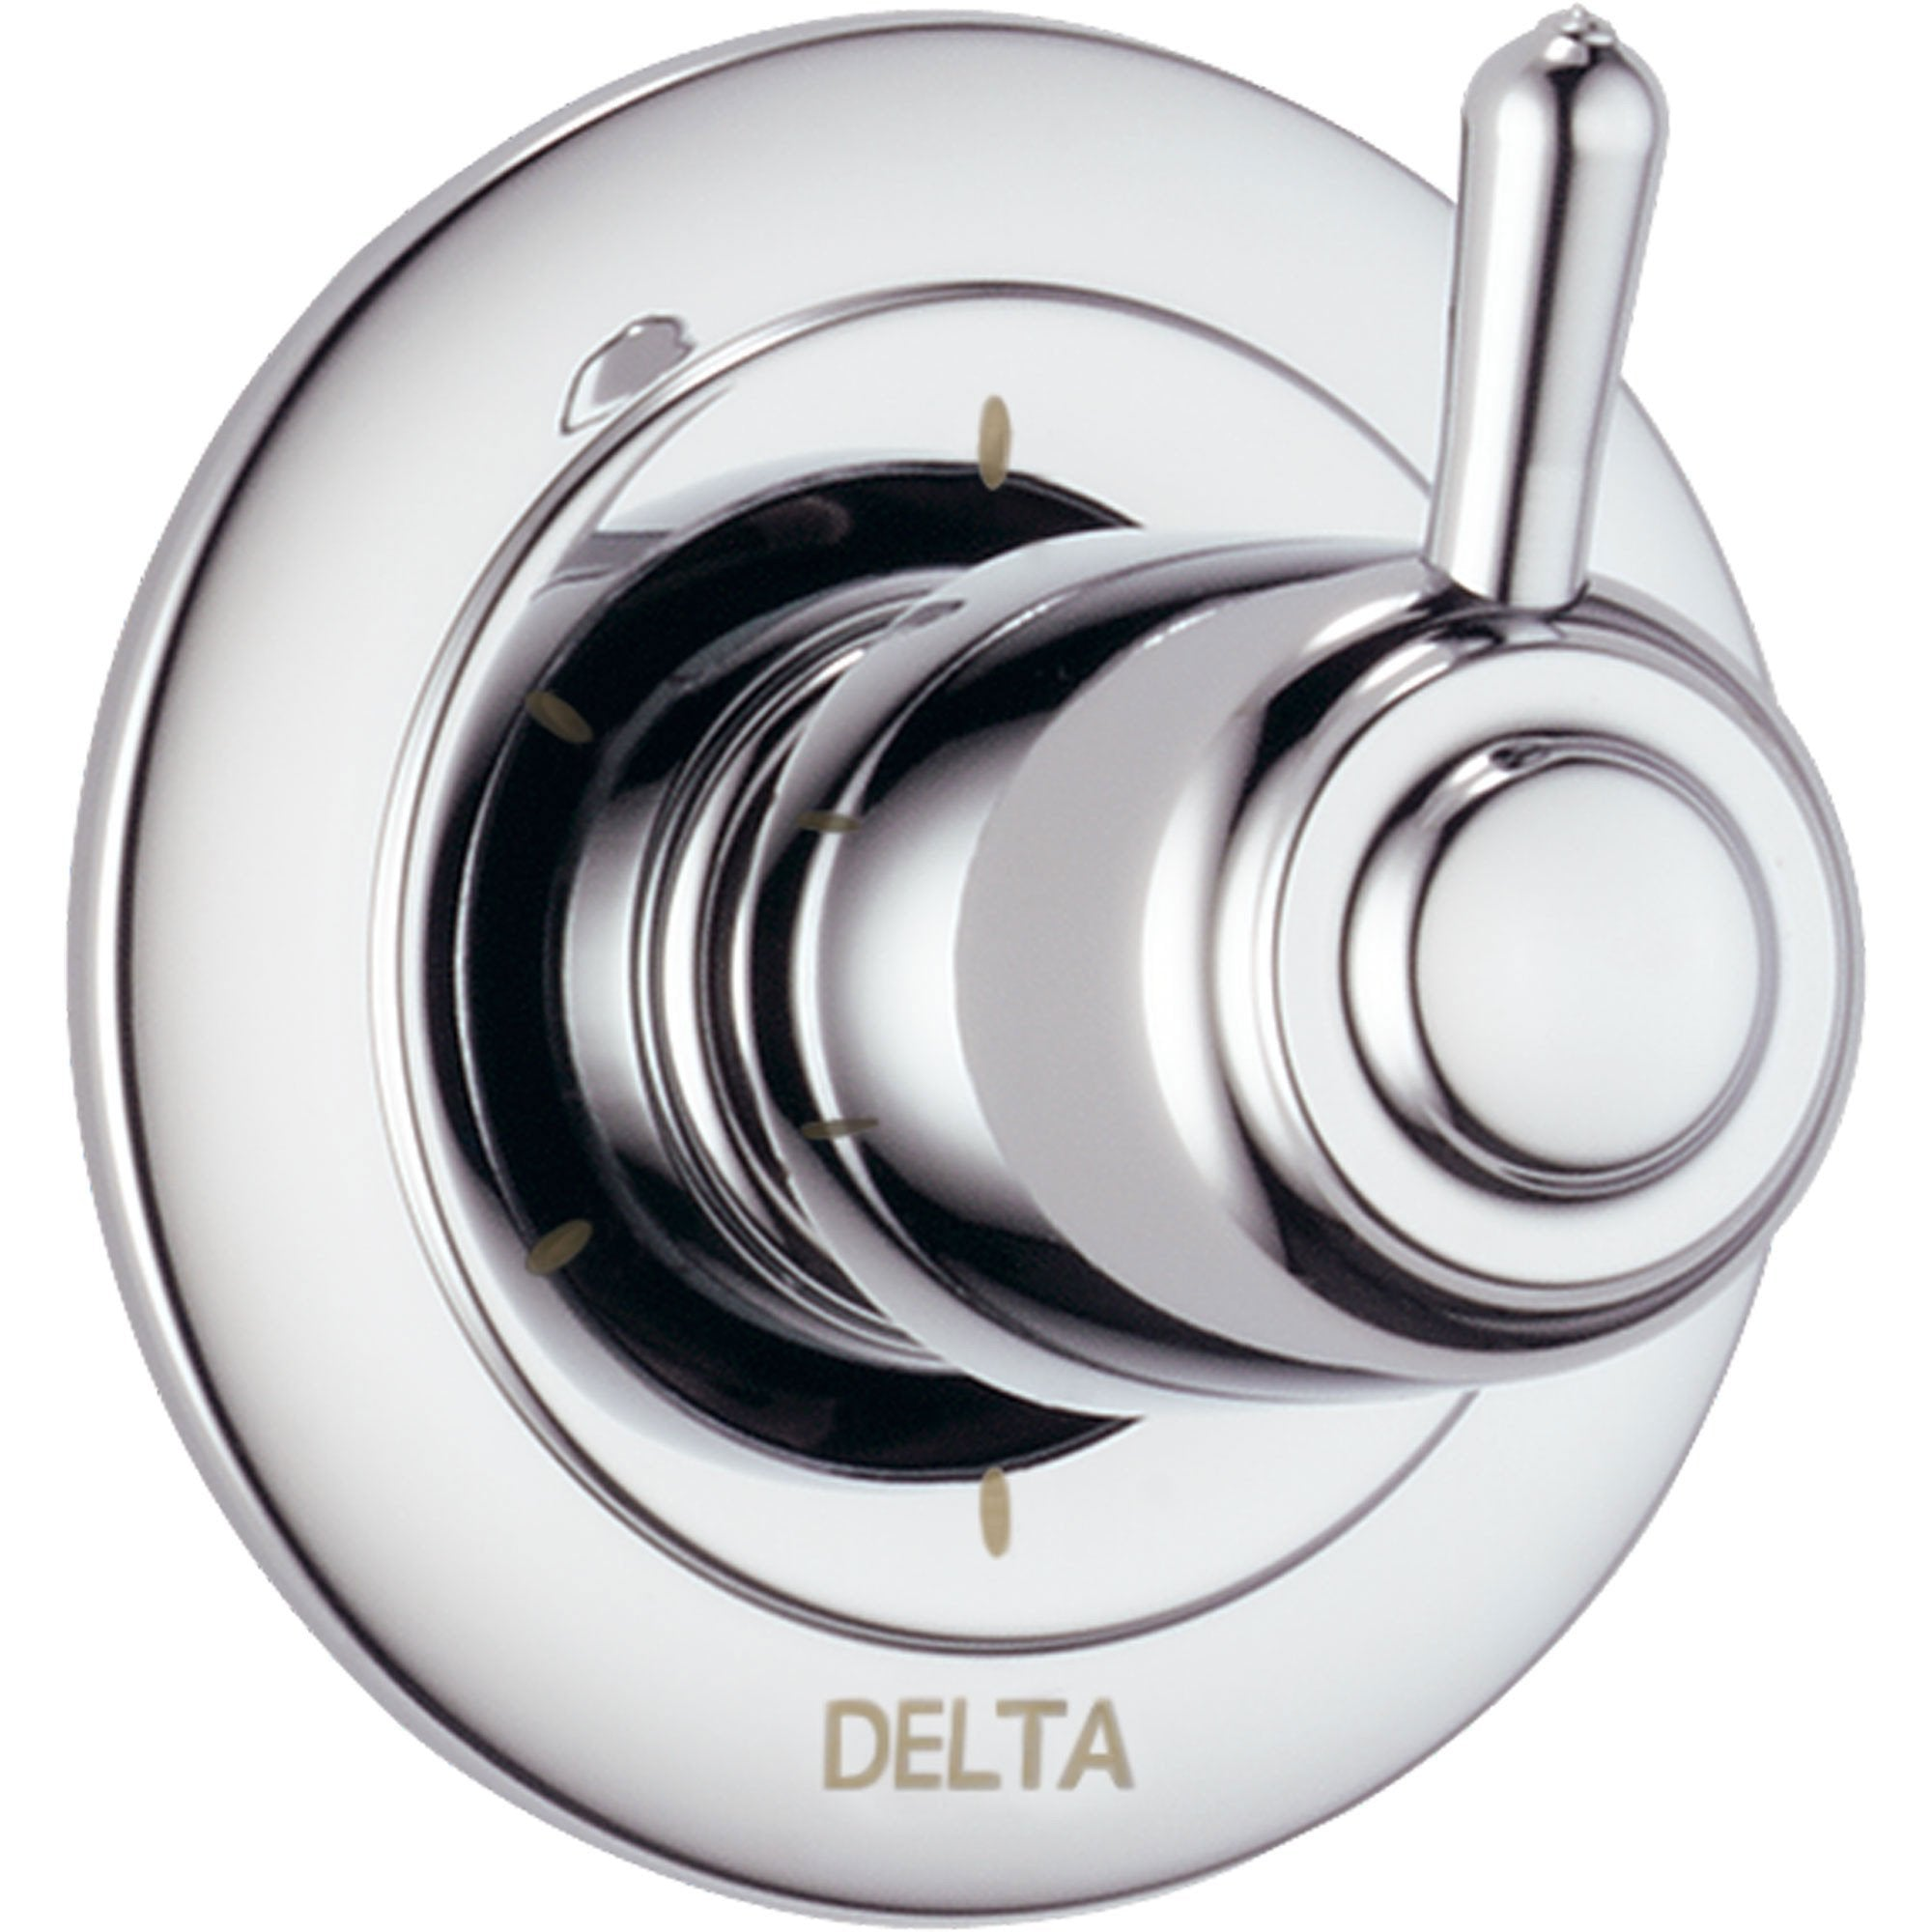 Delta 6-Setting Chrome Single Handle Shower Diverter Trim Kit 560981